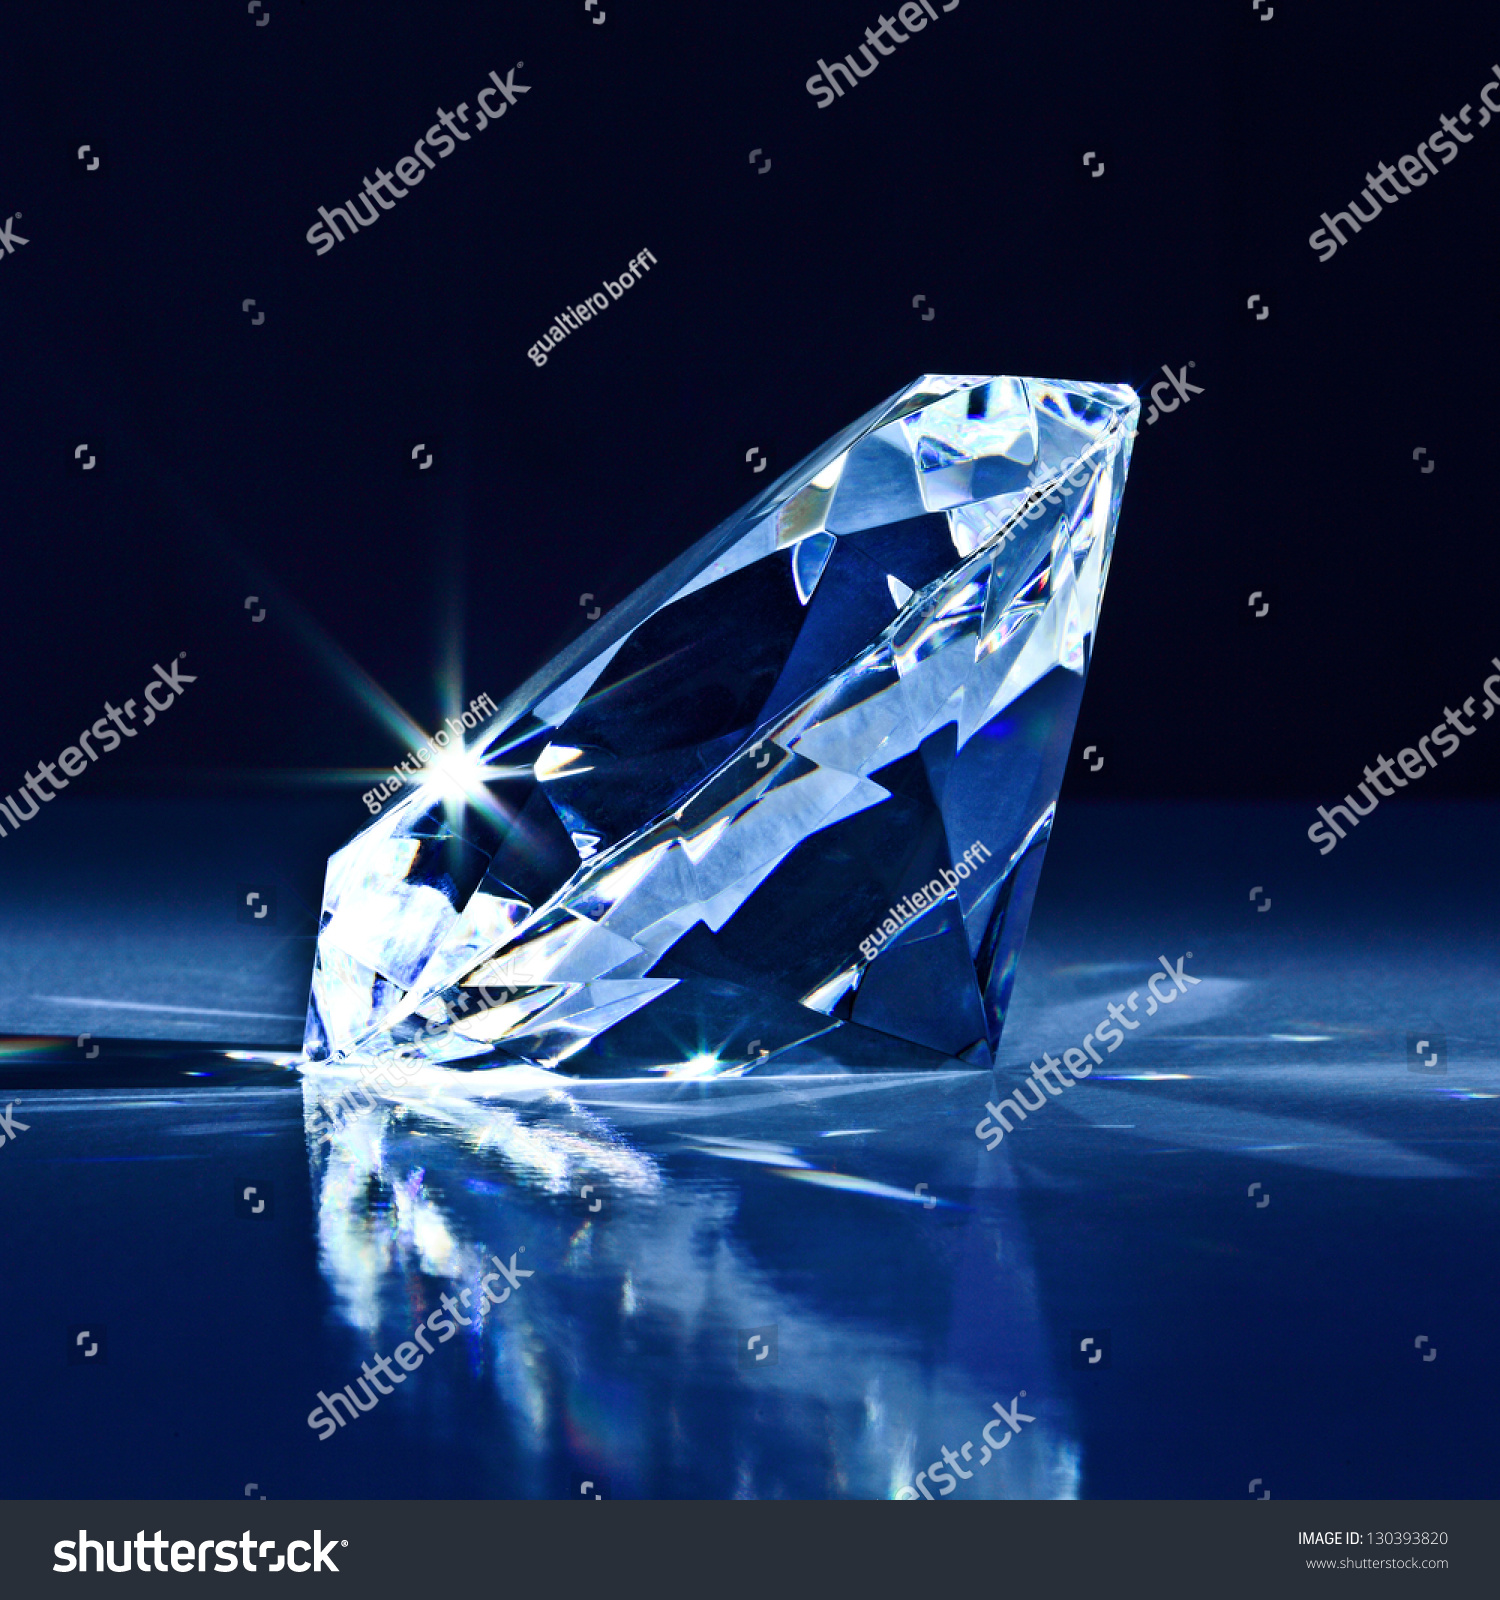 shape gemstone lighting light macro sphere photography circle cut photo mineral forever expensive laser free round en jewel diamond glisten sparkler carbon luxury carat darkness reflection images allotrope royalty sunlight brilliant sparkle hard